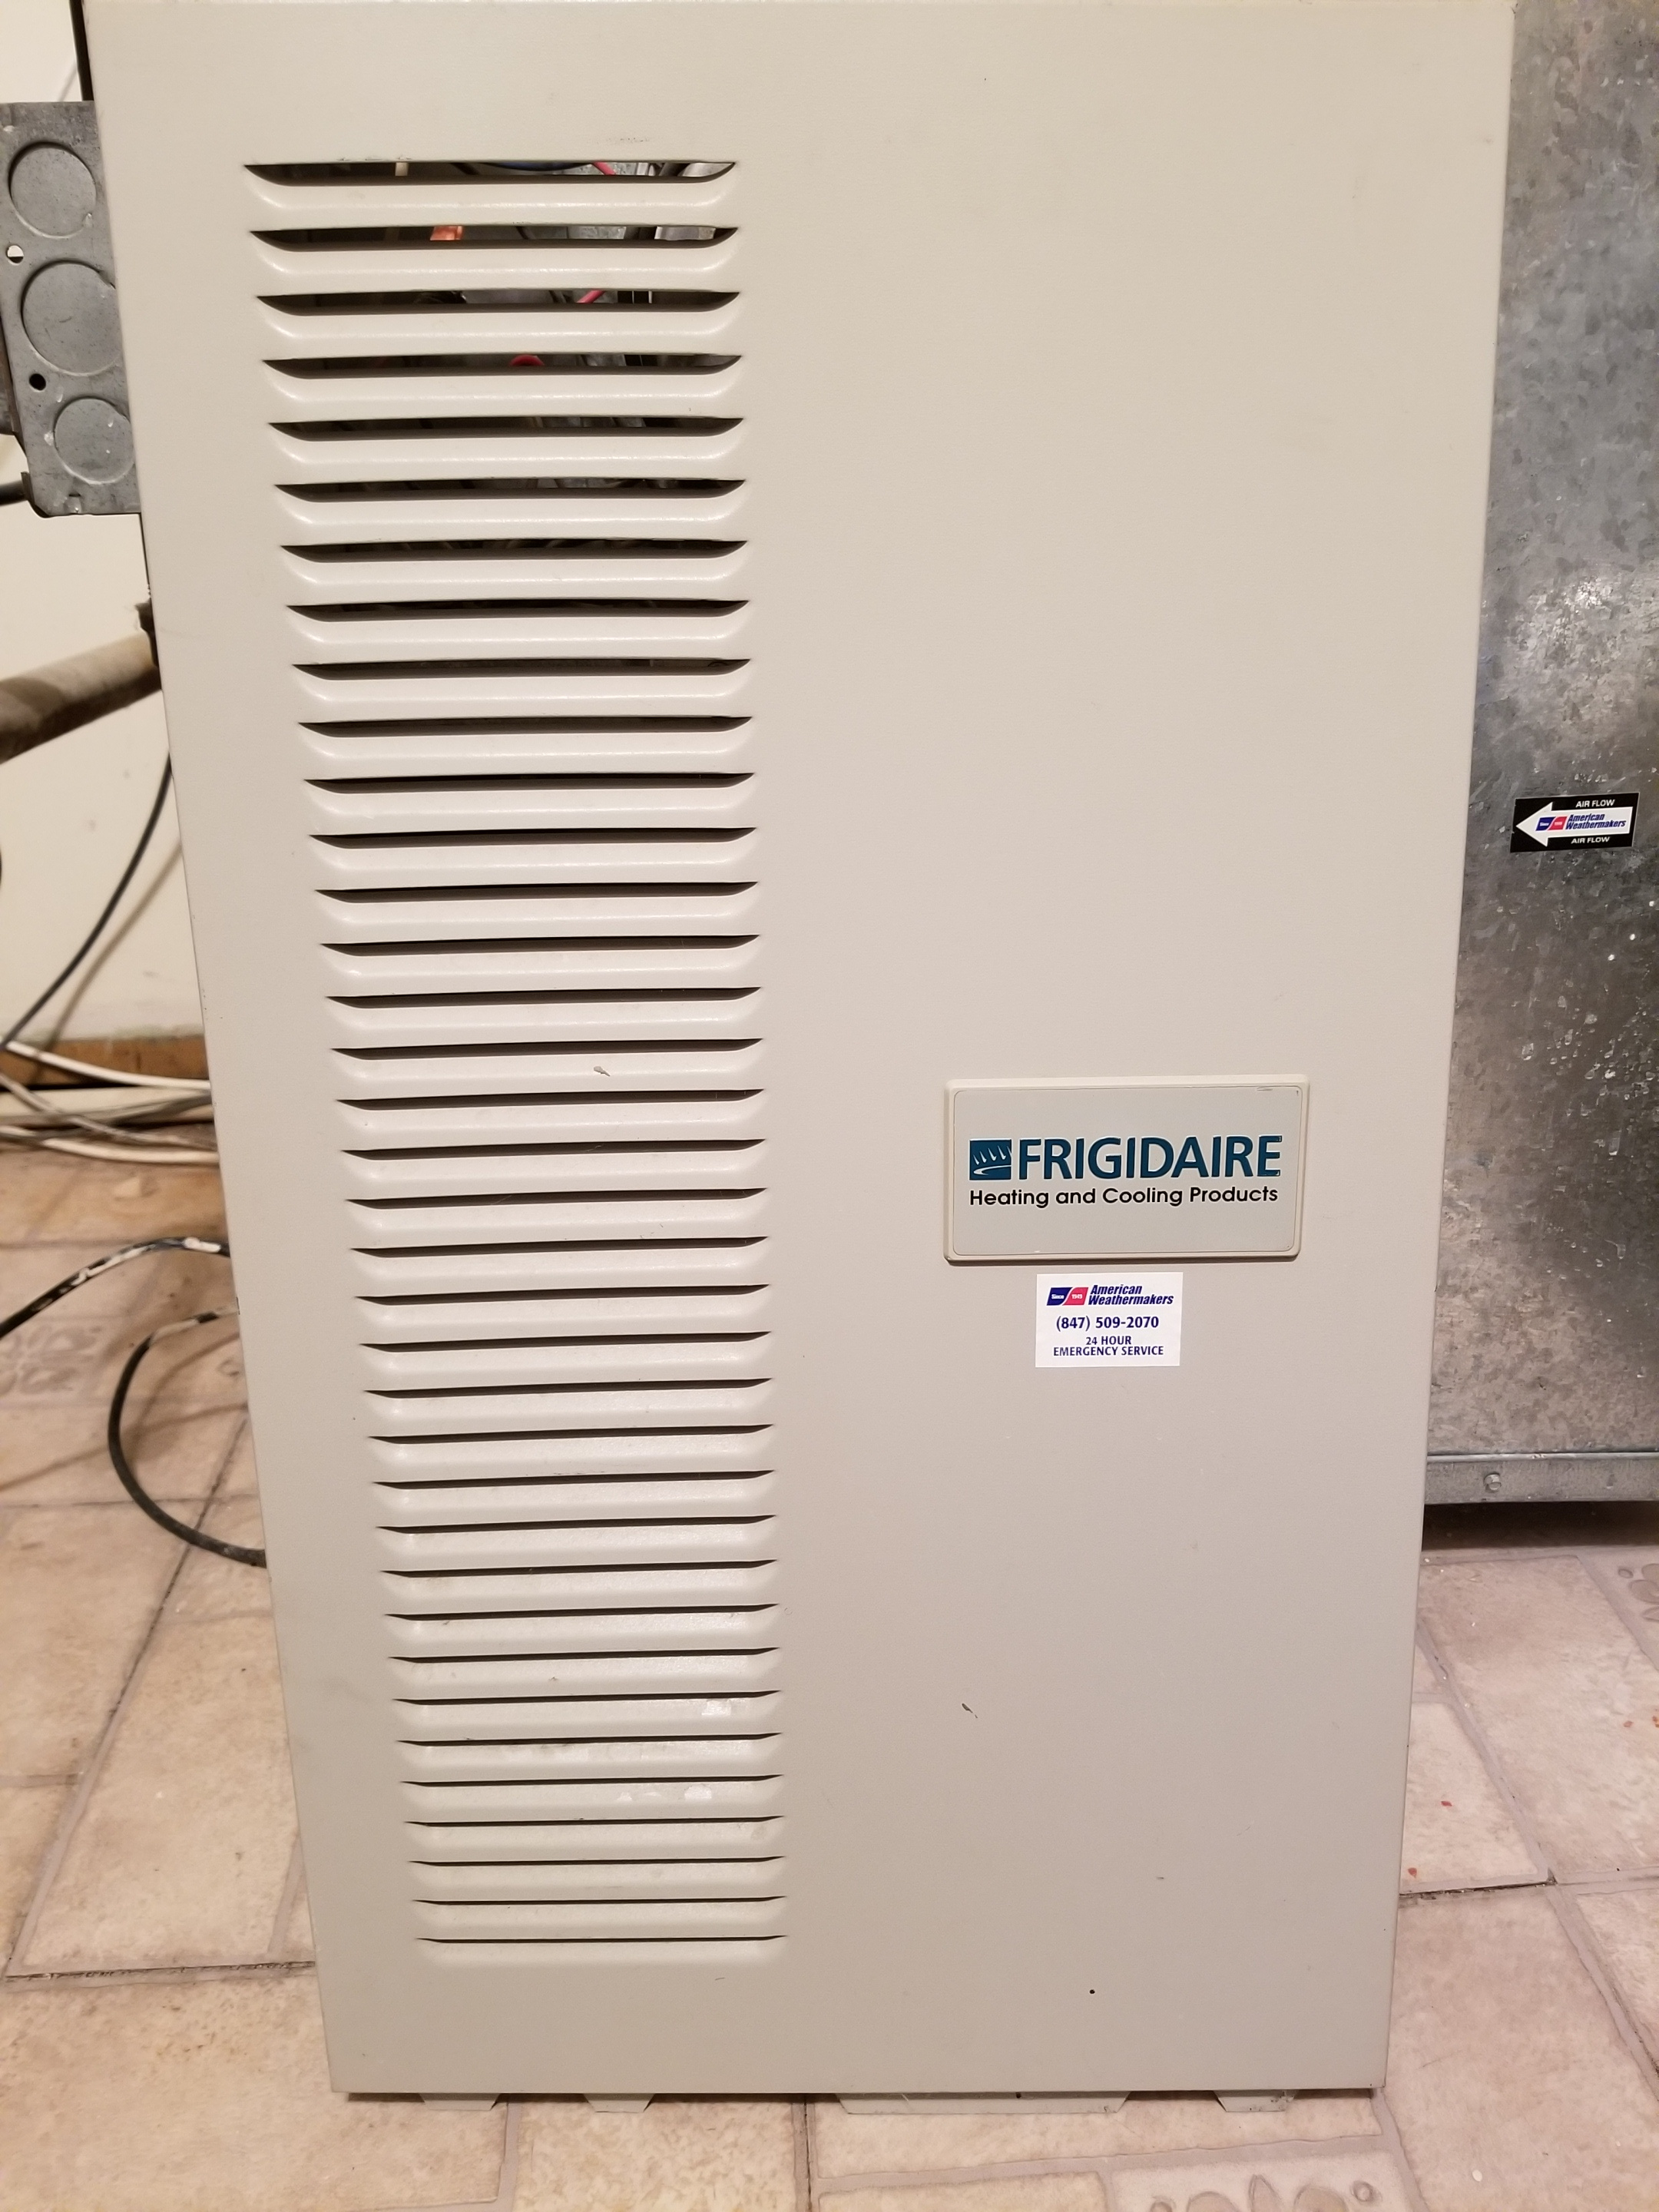 Repaired the Frigidaire furnace and made adjustments to improve the overall efficiency and life expectancy of the equipment